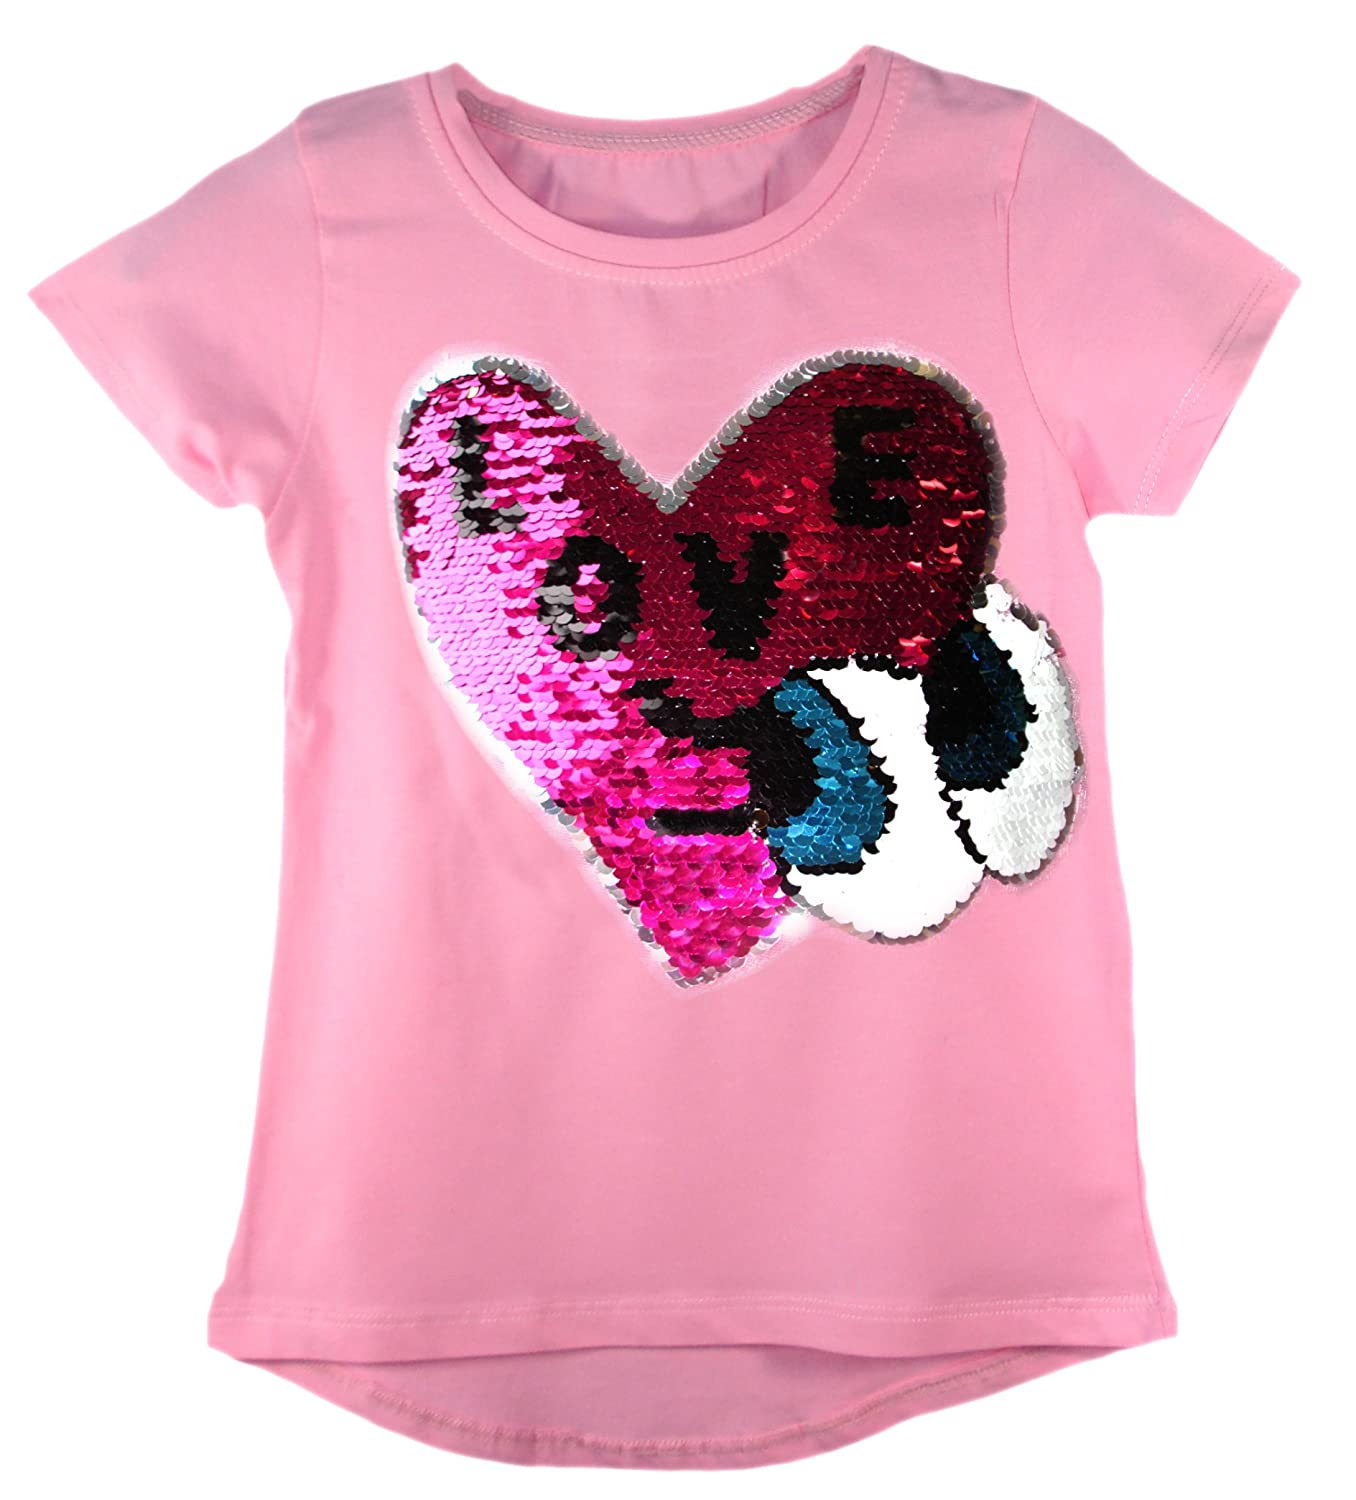 b5ab40b5 Amazon.com: Kids Girls Changing Sequin Sizes Heart Butterfly Tops Brush  Love Star 3-14 Years: Clothing